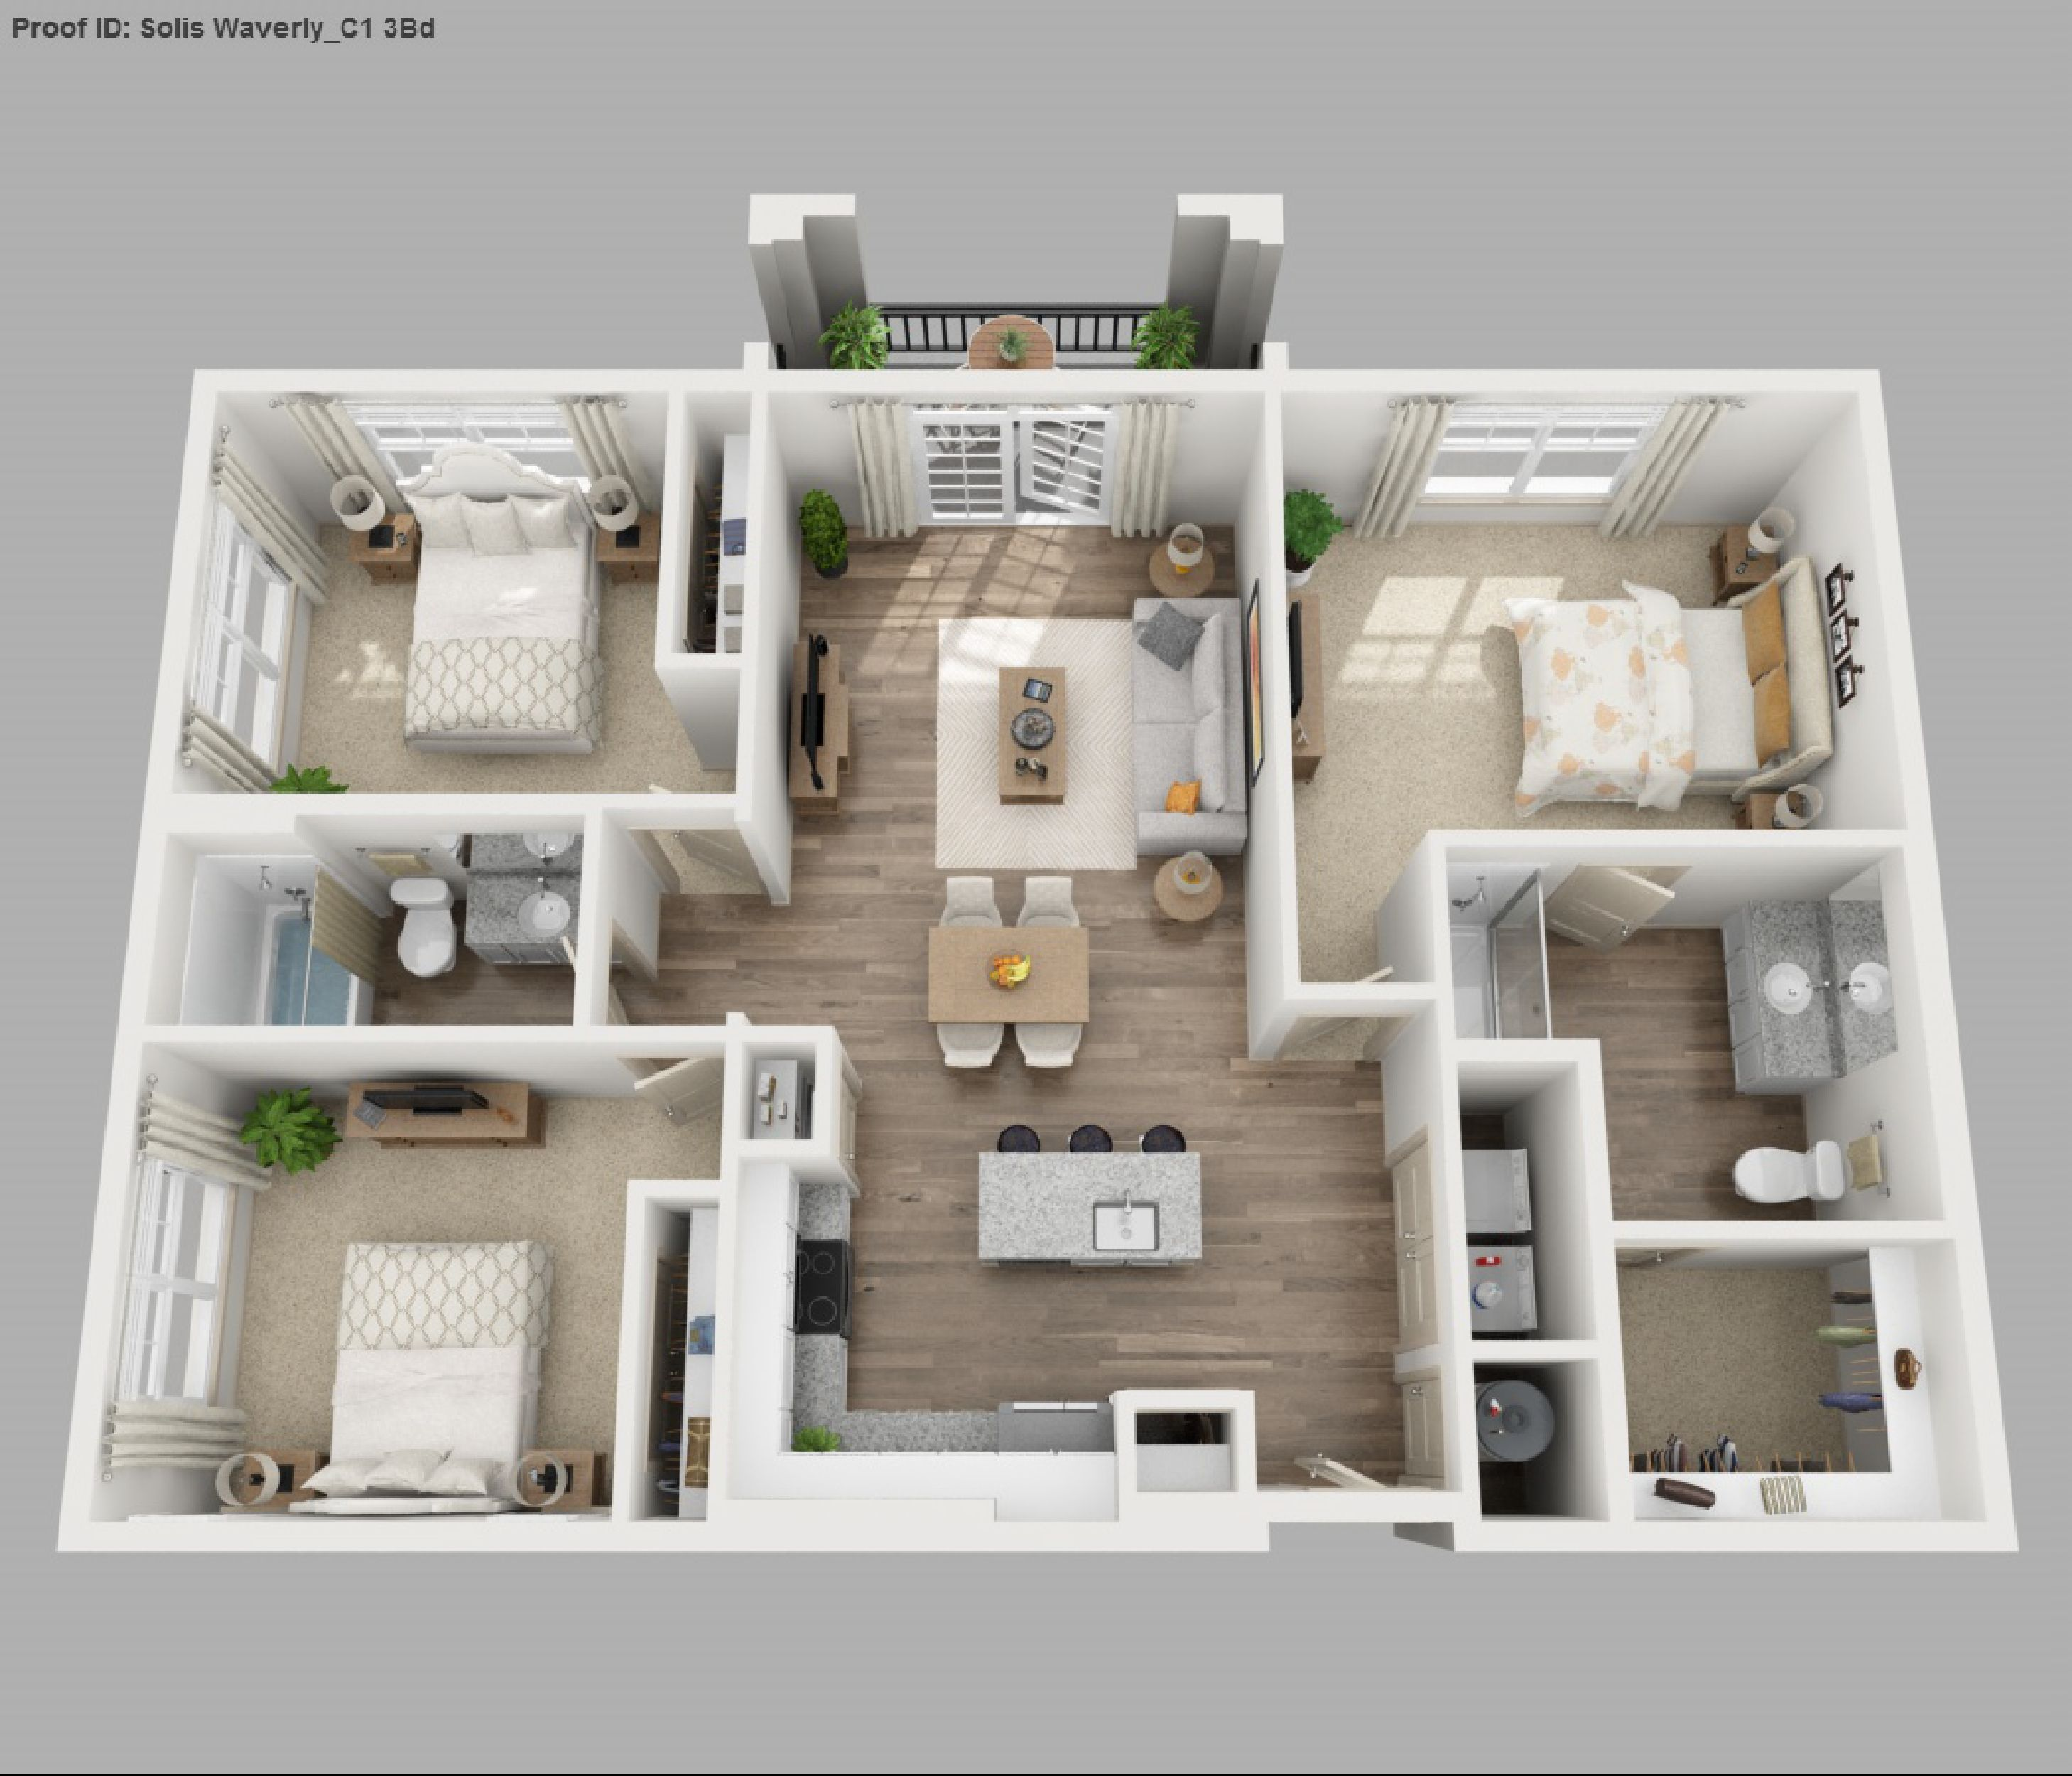 Three Bedroom Apartment 3d Floor Plans When You Re Building A New Home Or Renovating An Existing One Coming Up With A Fan Apartment Floor Plans Bedroom House Plans Simple House